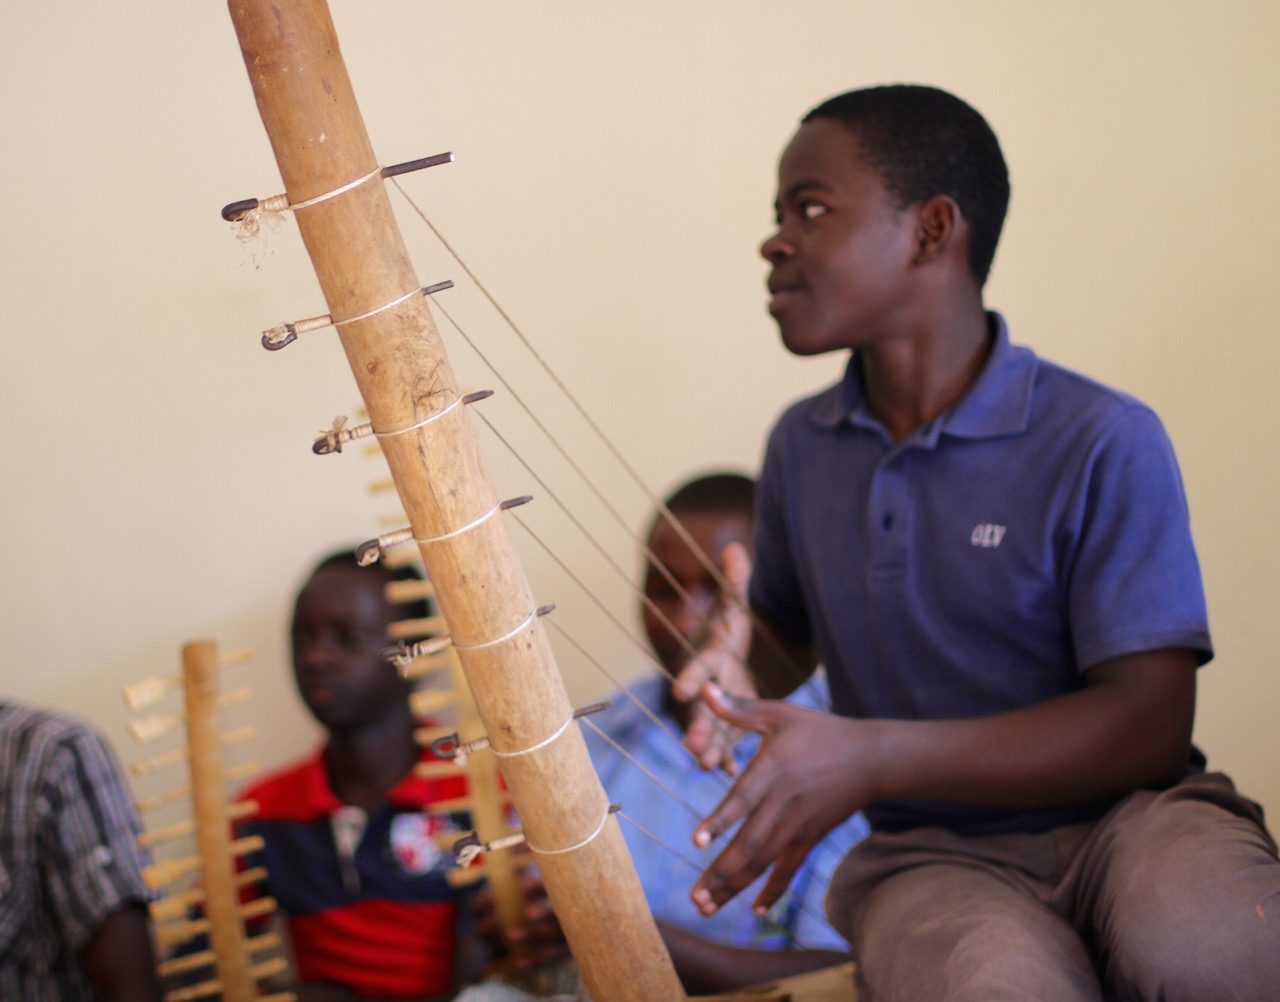 The children and youth at Bitone come from vulnerable economic and social backgrounds. The Center's goal is to equip them with education and vocational training skills so they can stand on their own feet. (In this photo: Alex)